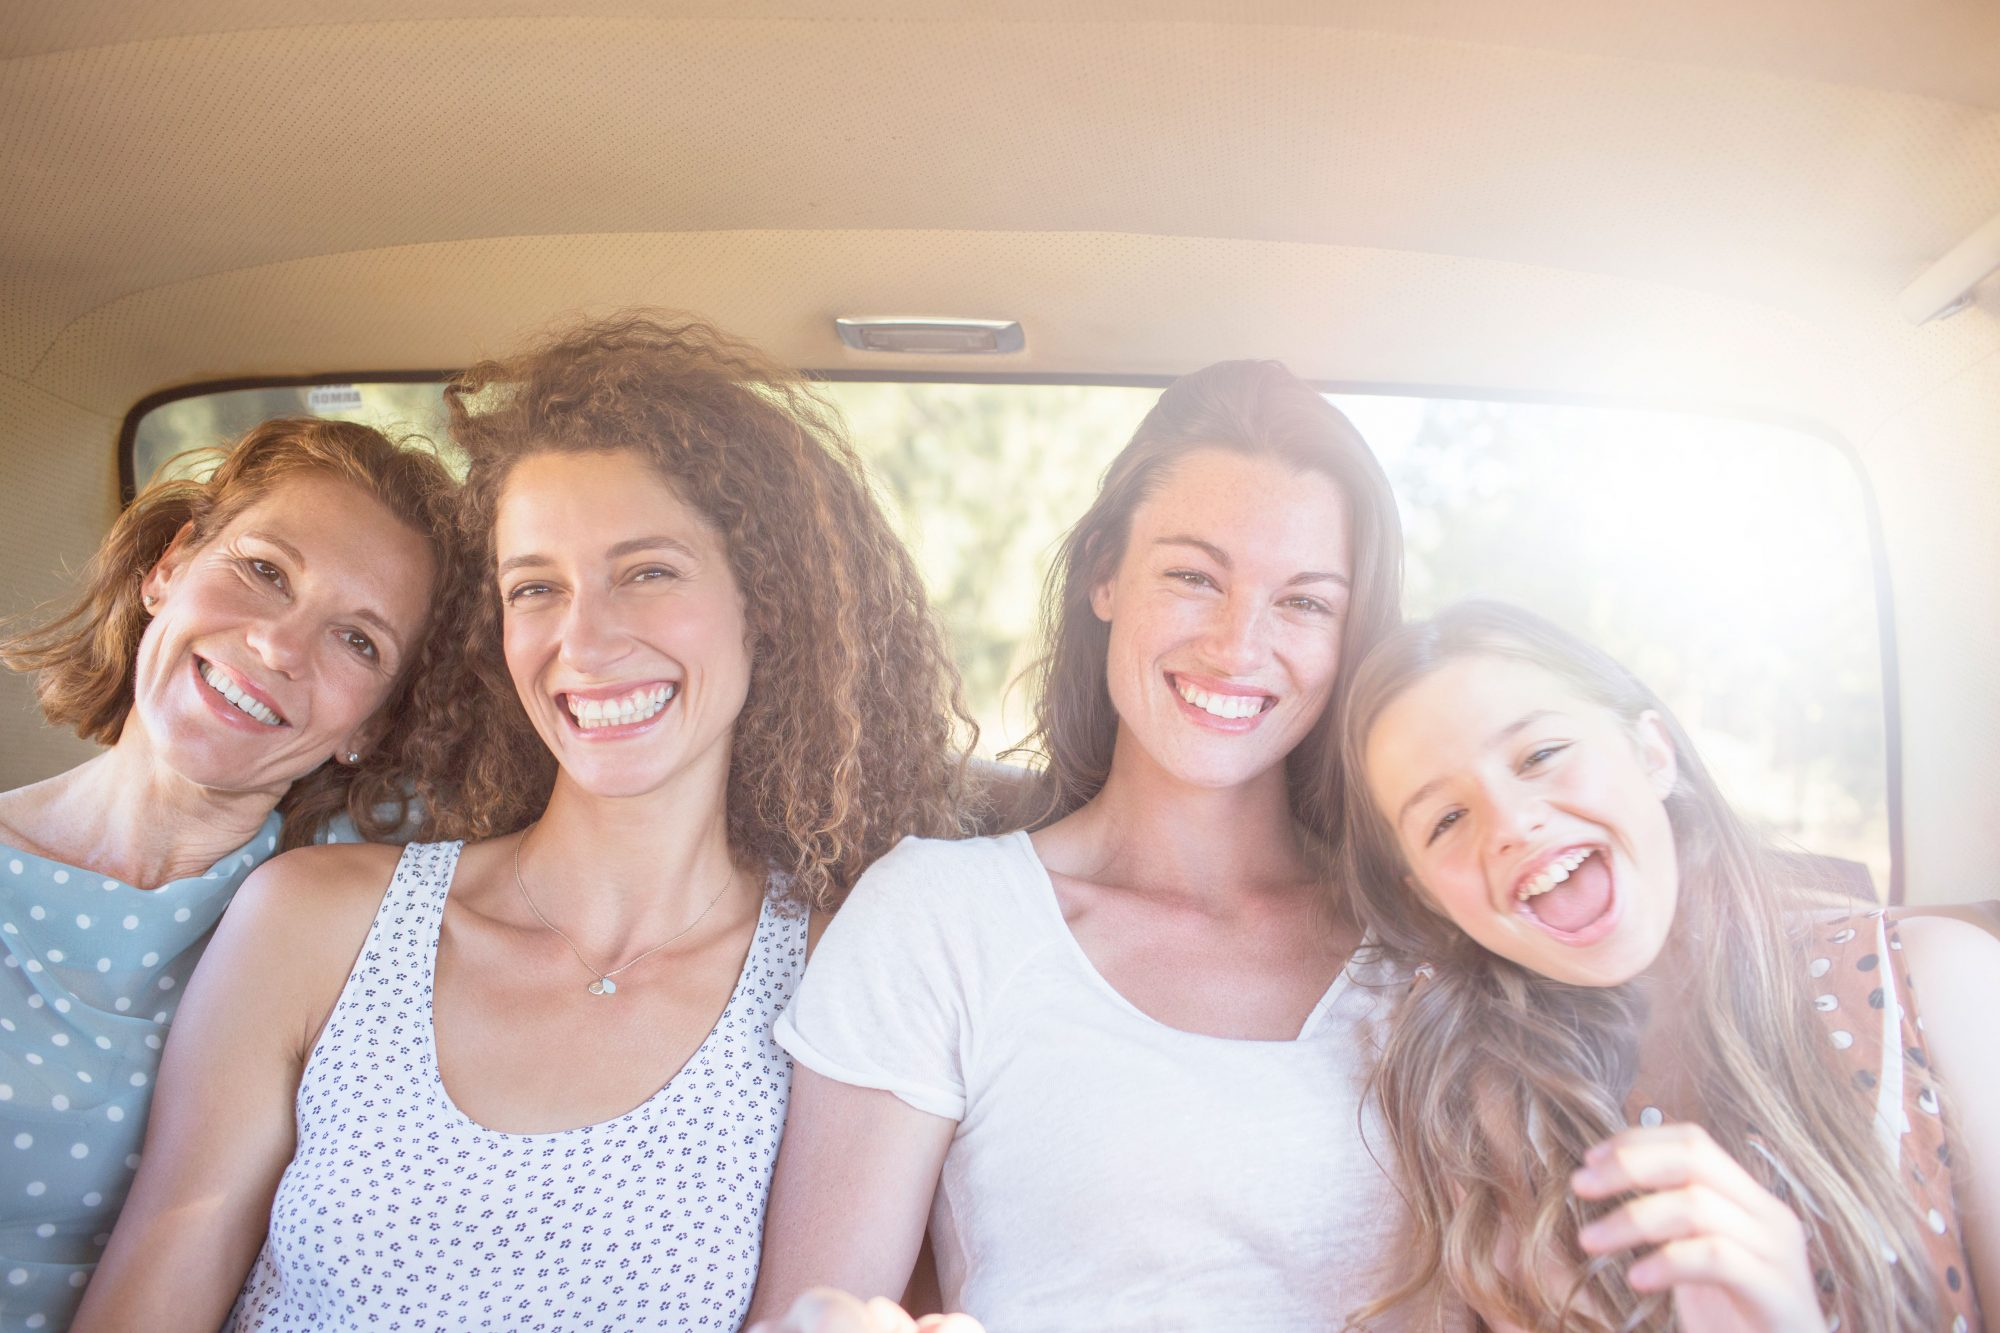 Women Sitting in Backseat of Car